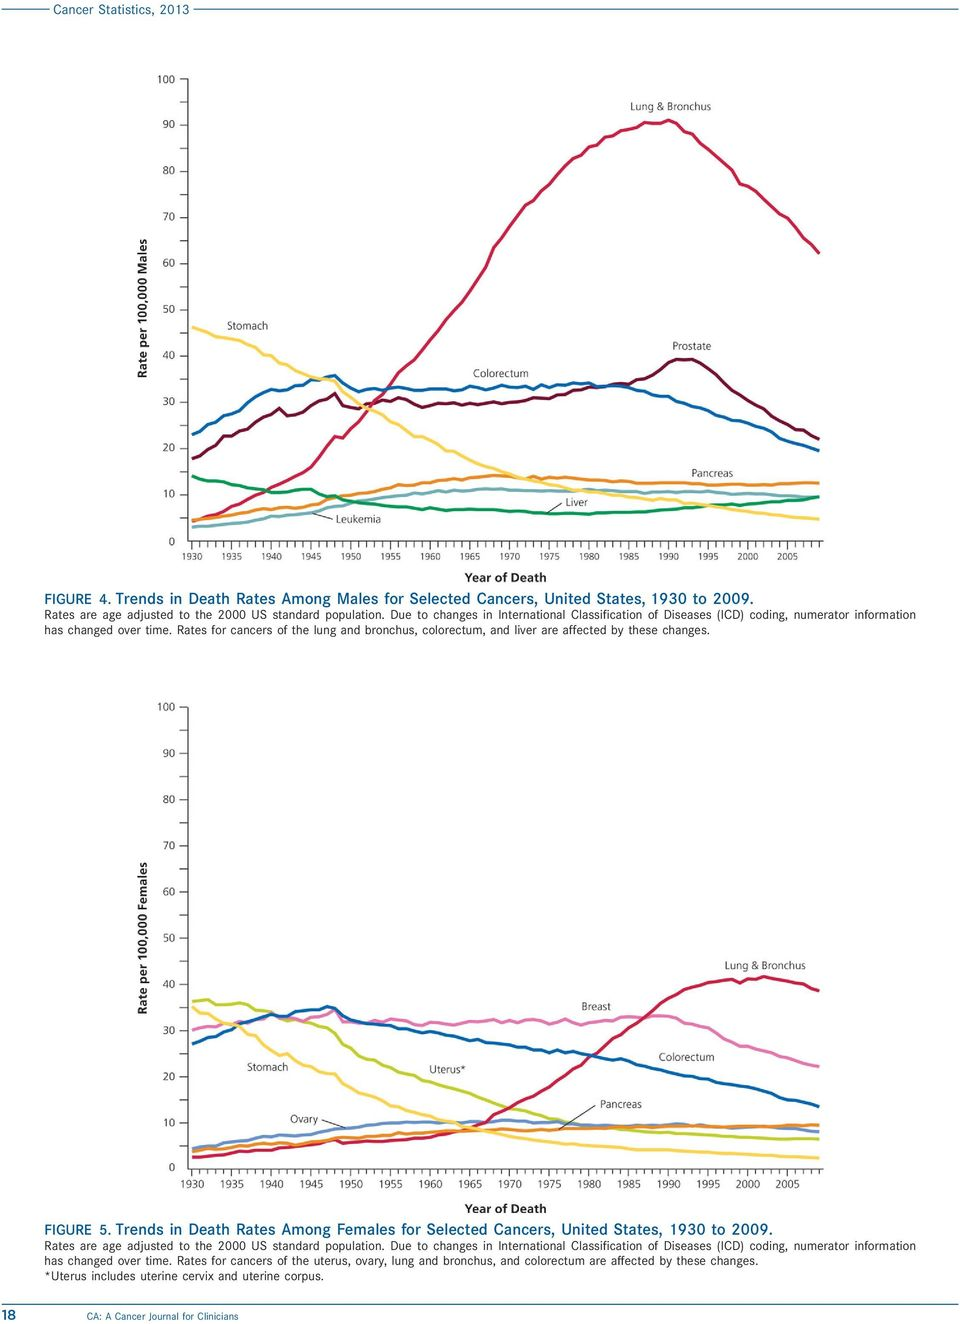 Rates for cancers of the lung and bronchus, colorectum, and liver are affected by these changes. FIGURE 5. Trends in Death Rates Among Females for Selected Cancers, United States, 1930 to 2009.